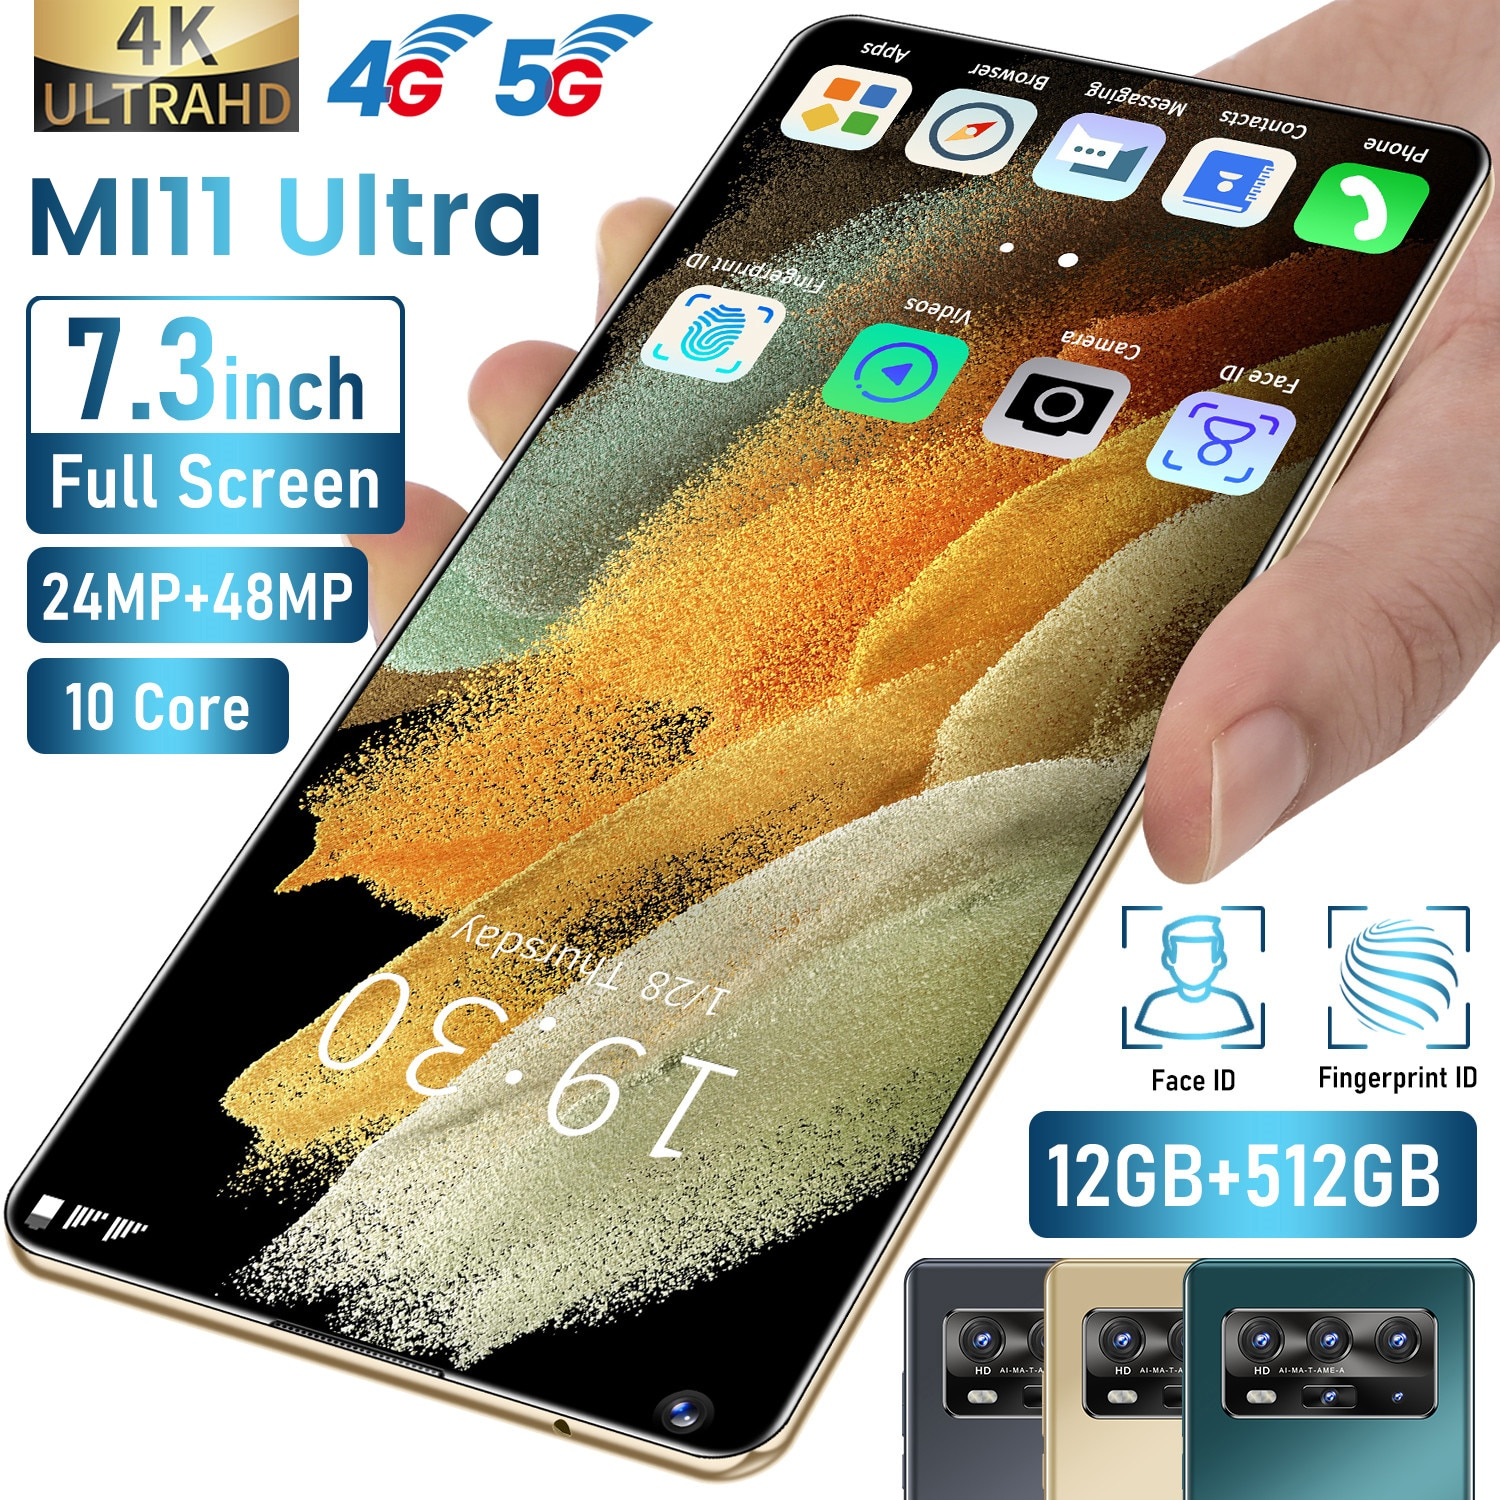 5G Smartphone MI11 Ultra Android11 Snapdragon888 12G 512G 6.8 Inch 48MP Deca Core 4G LTE Global Version Undefined Mobile Phone